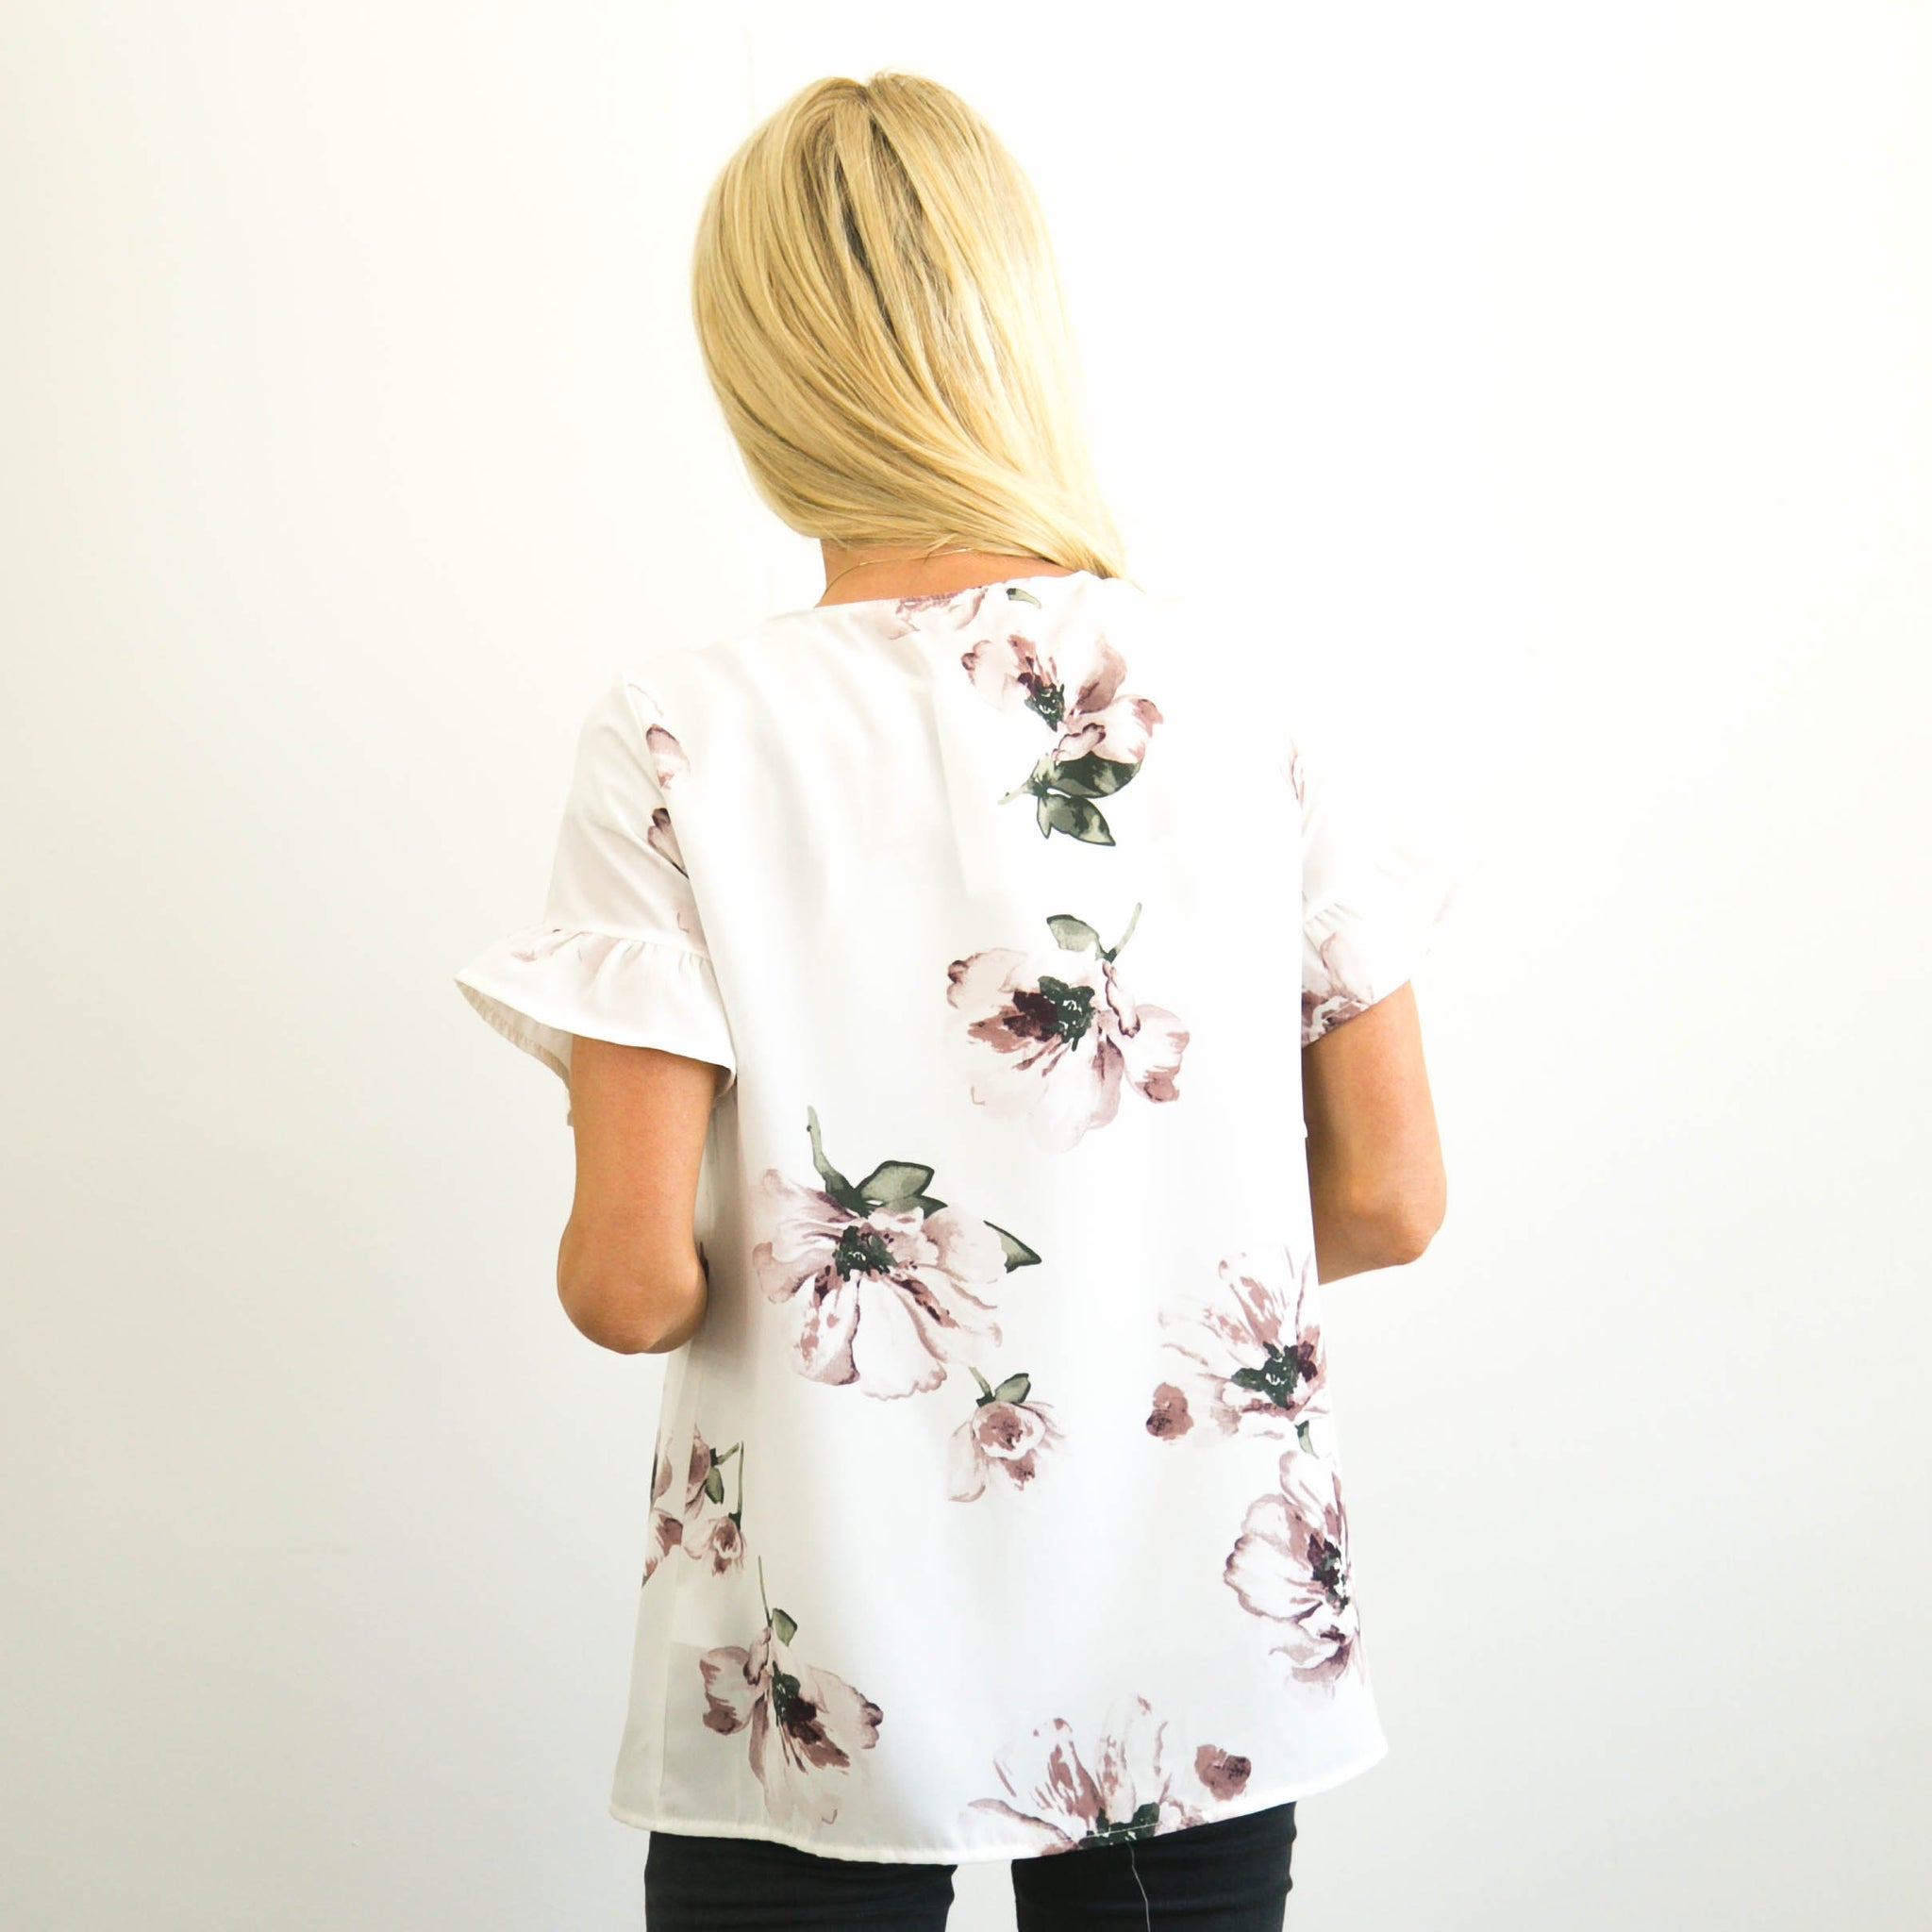 S & Co. Shawna Flower Top